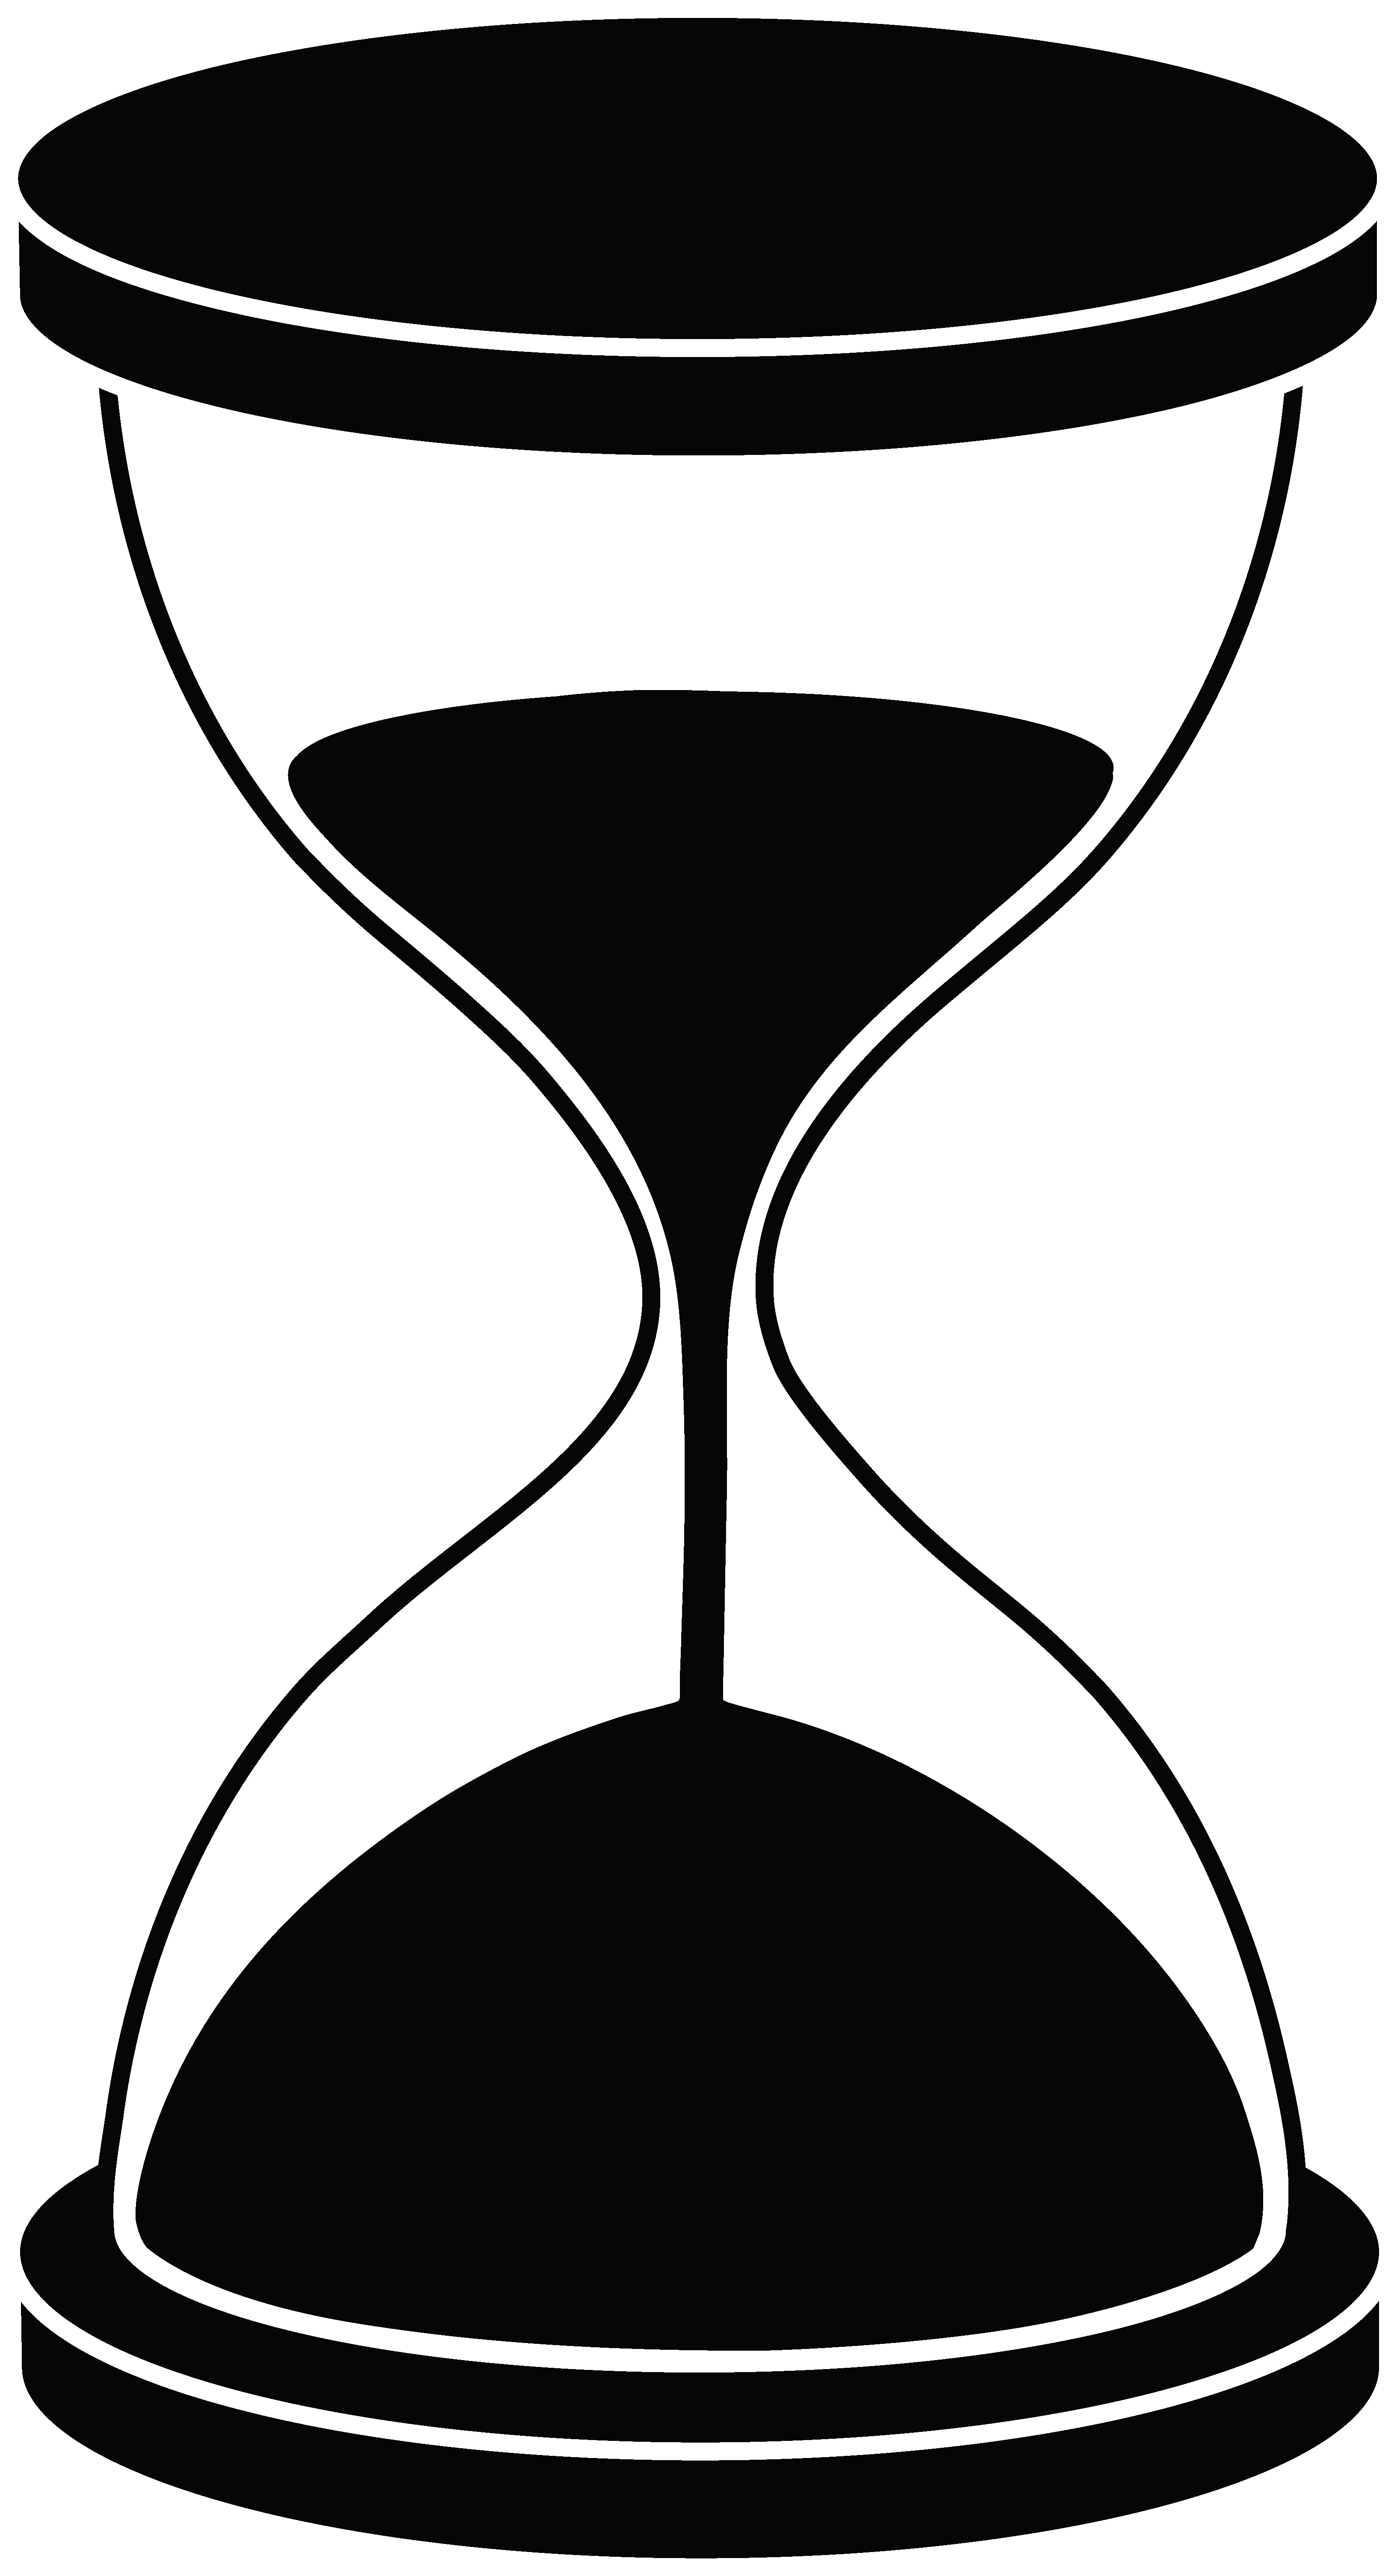 Hourglass clipart. Awesome gallery digital collection